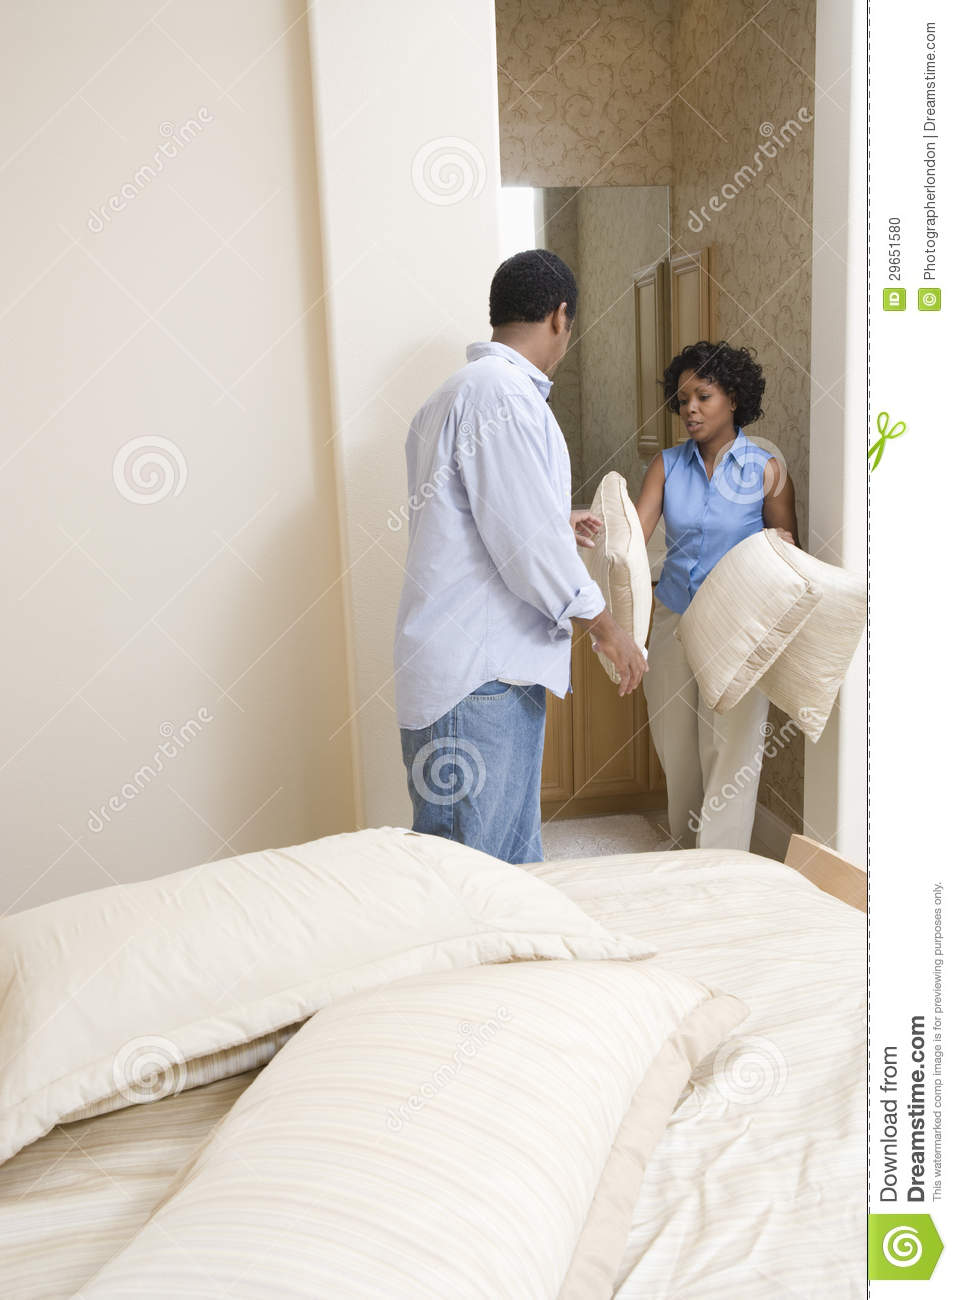 Couple choosing pillows for their bed stock photo image for Choosing pillows for bed